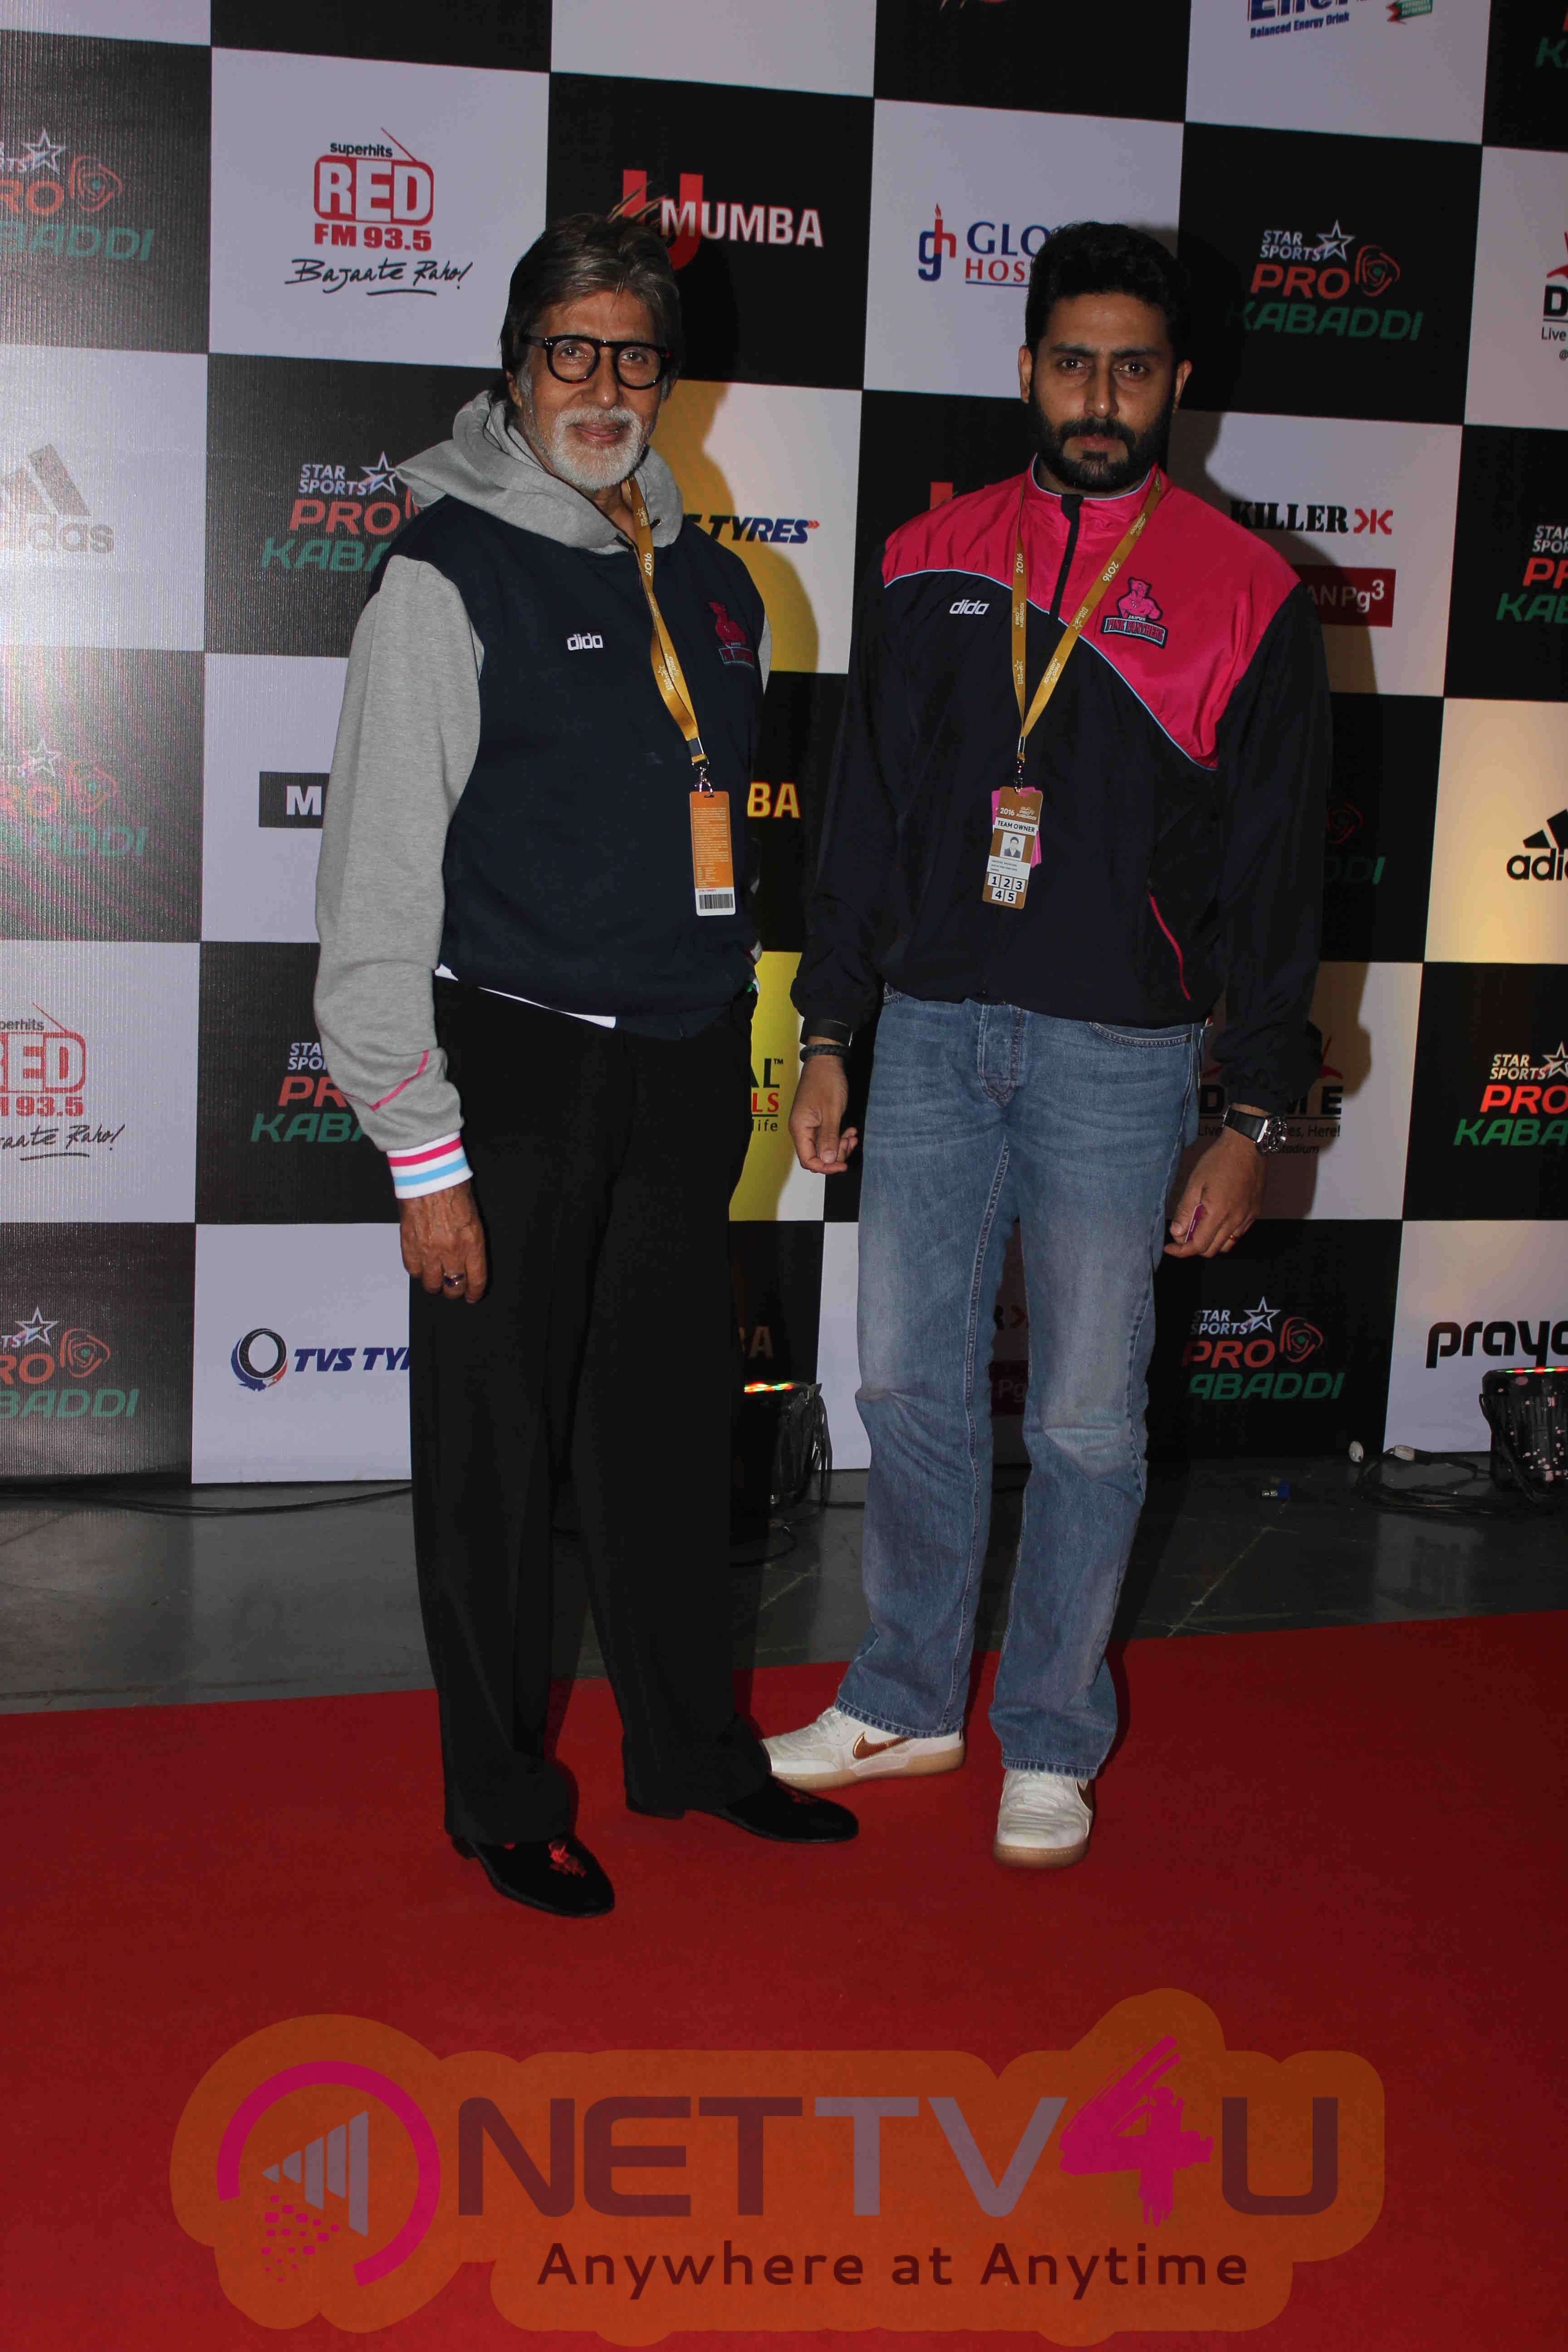 Amitabh Bachchan And Abhishek Bachchan At U Mumbai Vs Jaipur Pink Panthers PKL Match Photo Gallery